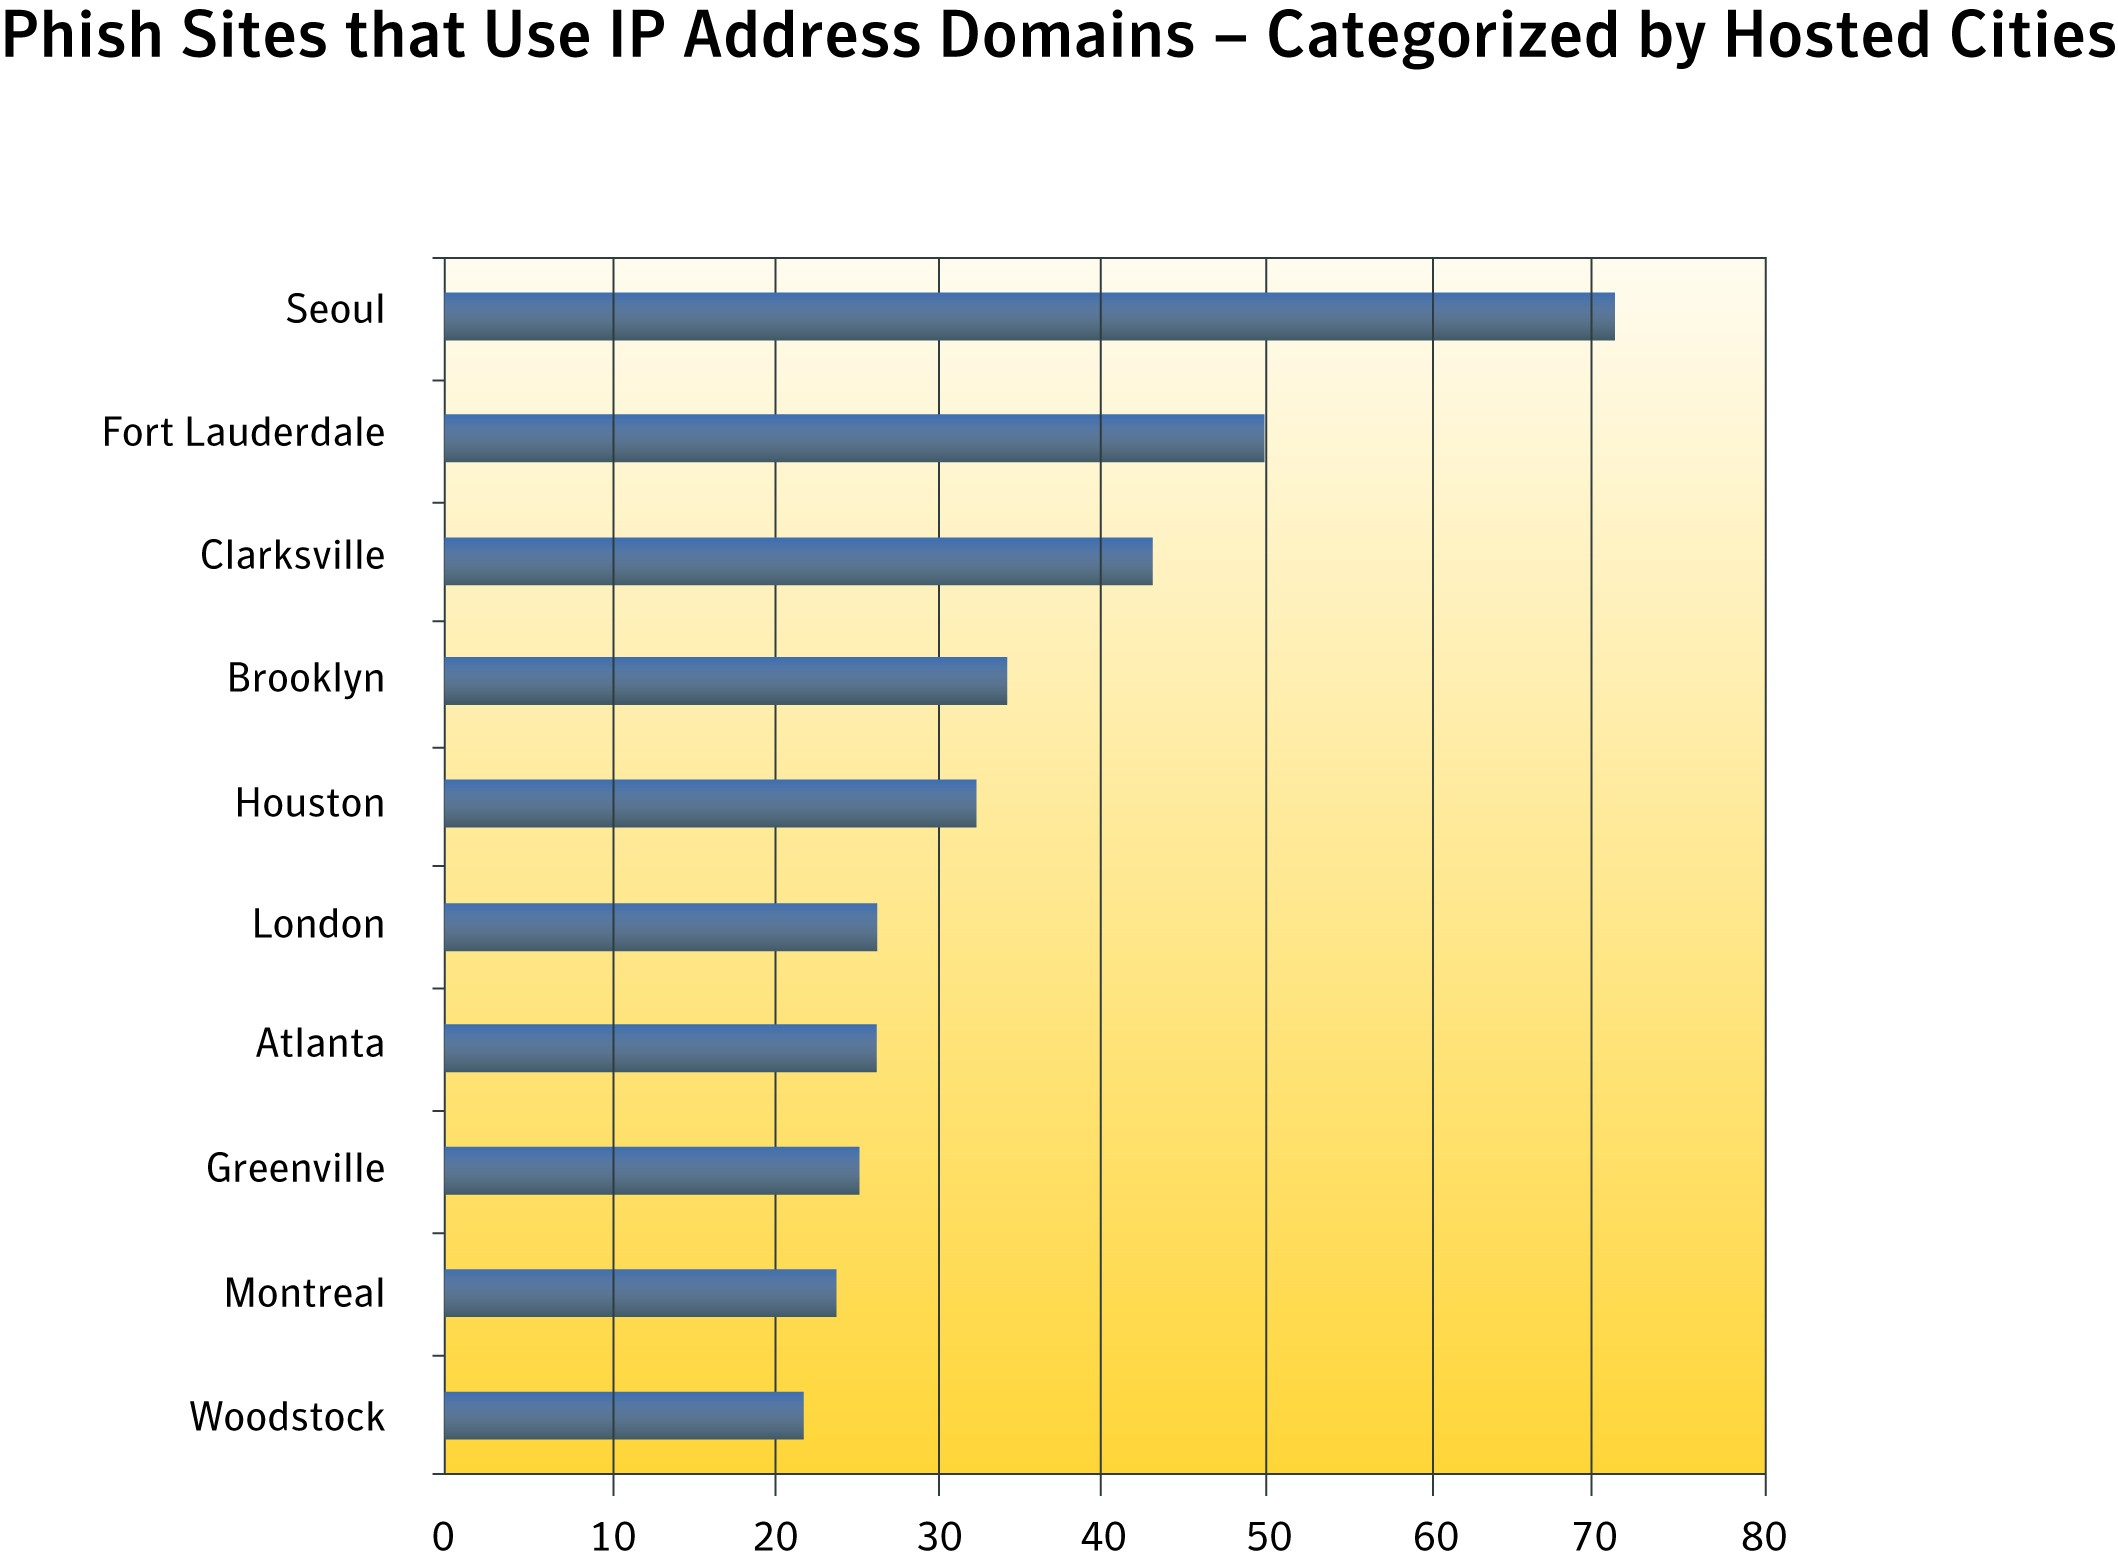 The top cities hosting phish sites were Seoul, Fort Lauderdale and Clarksville.